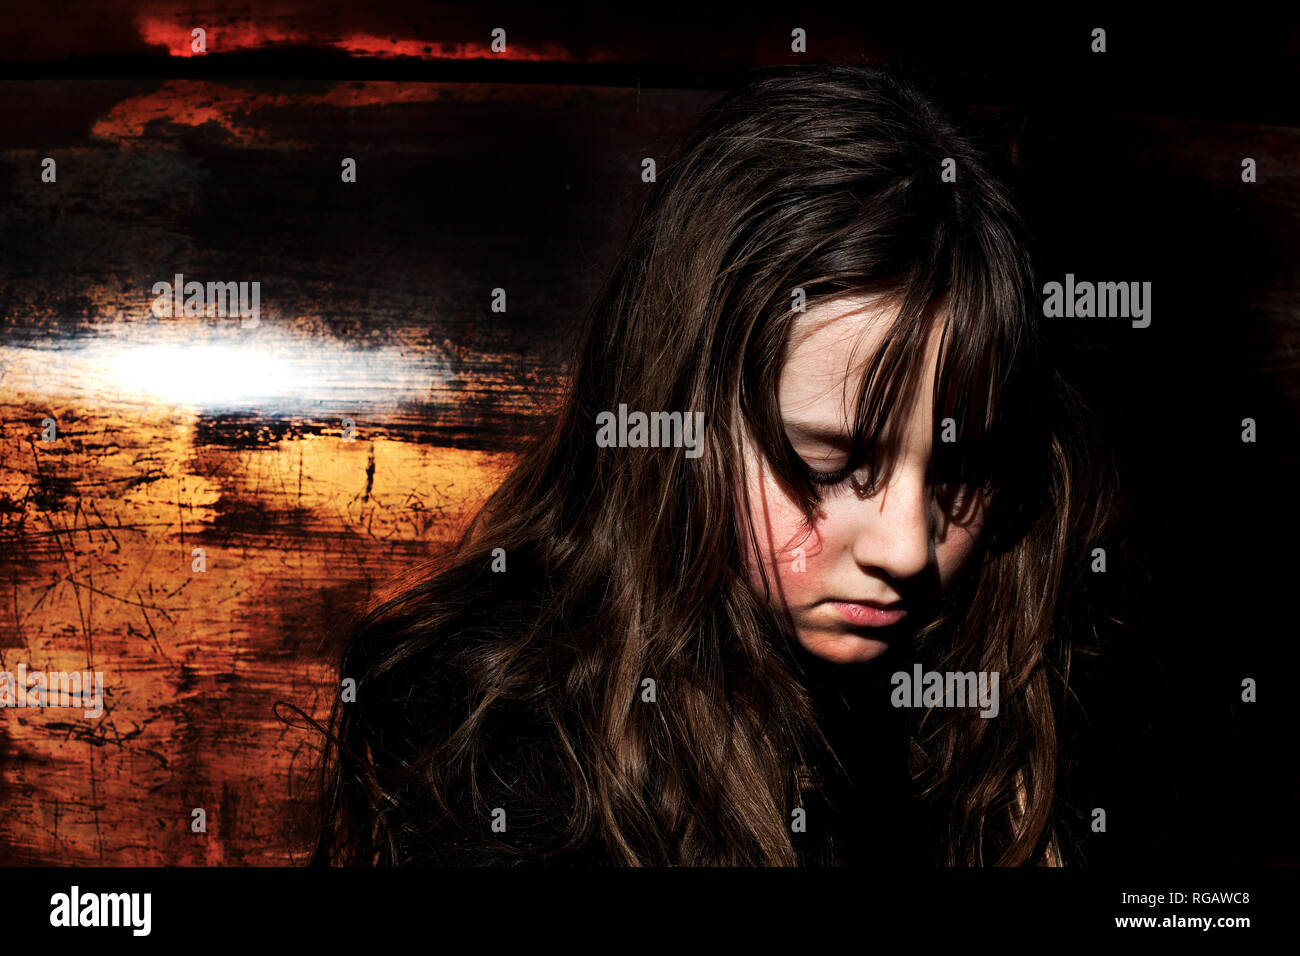 Boy with long hair. - Stock Image